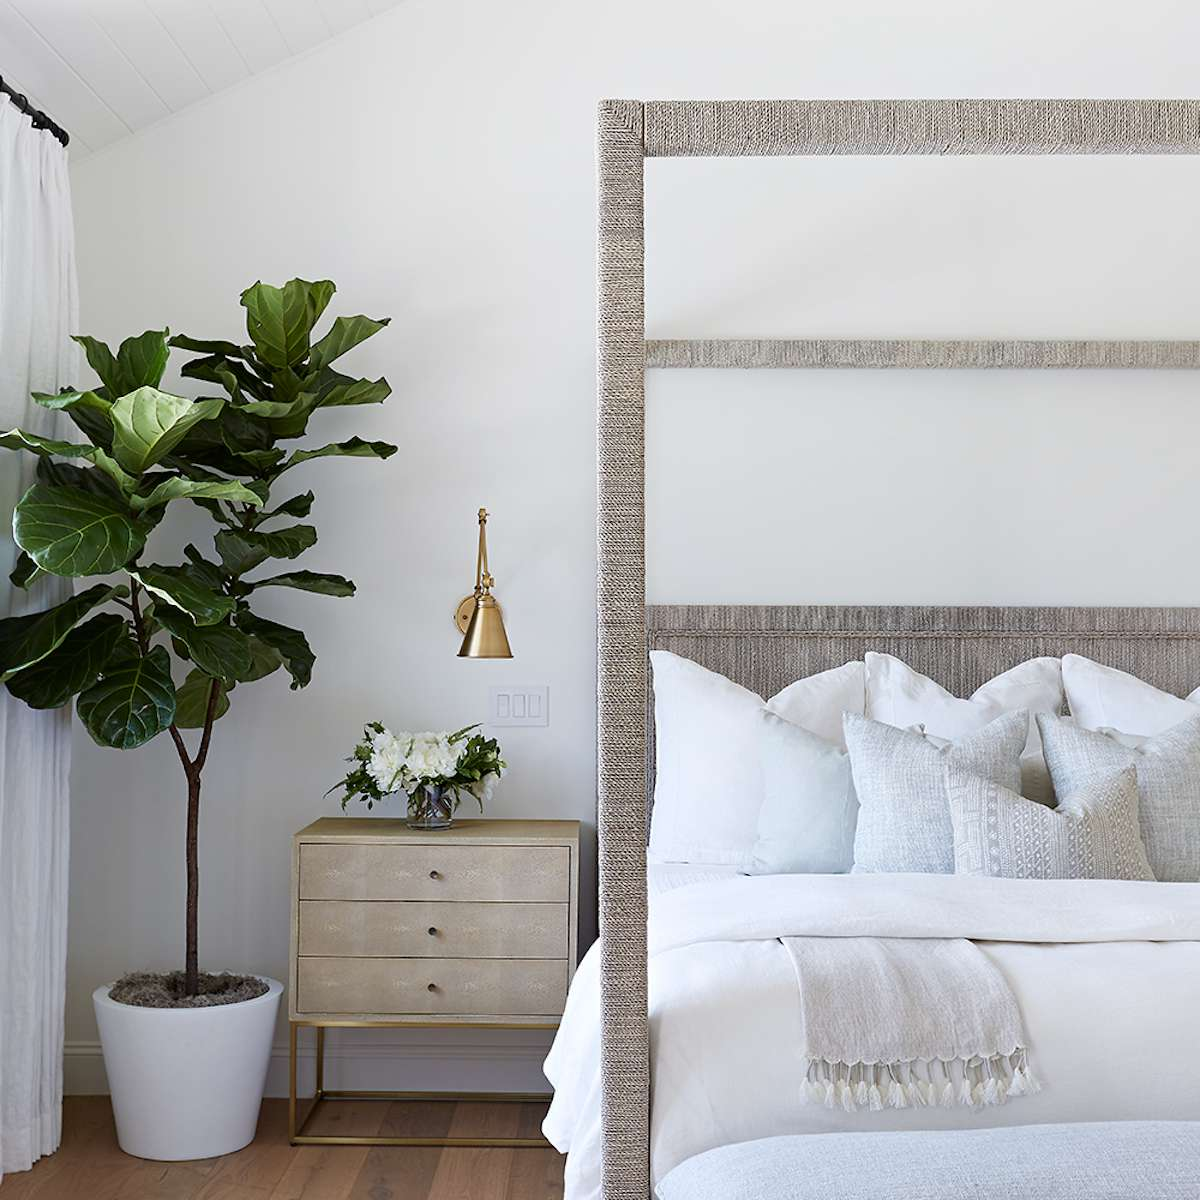 A minimalist bedroom with a woven canopy bed frame